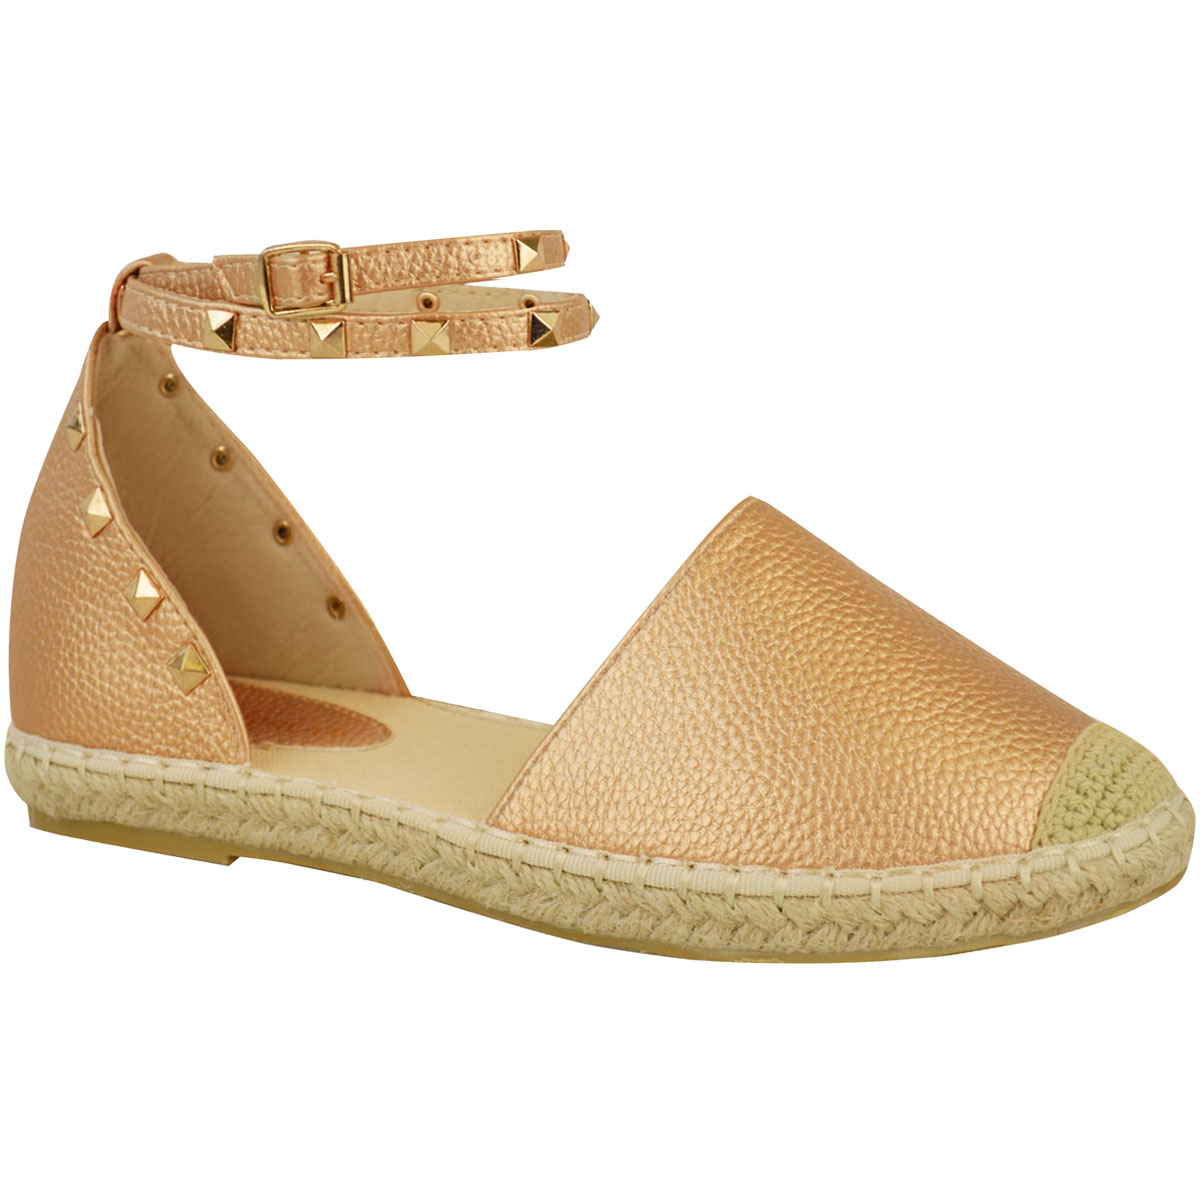 Shop for women's wedge shoes online at DSW. Browse through our broad selection of wedge sneakers, wedge sandals, wedge booties and wedge heels from the top brands and designers.